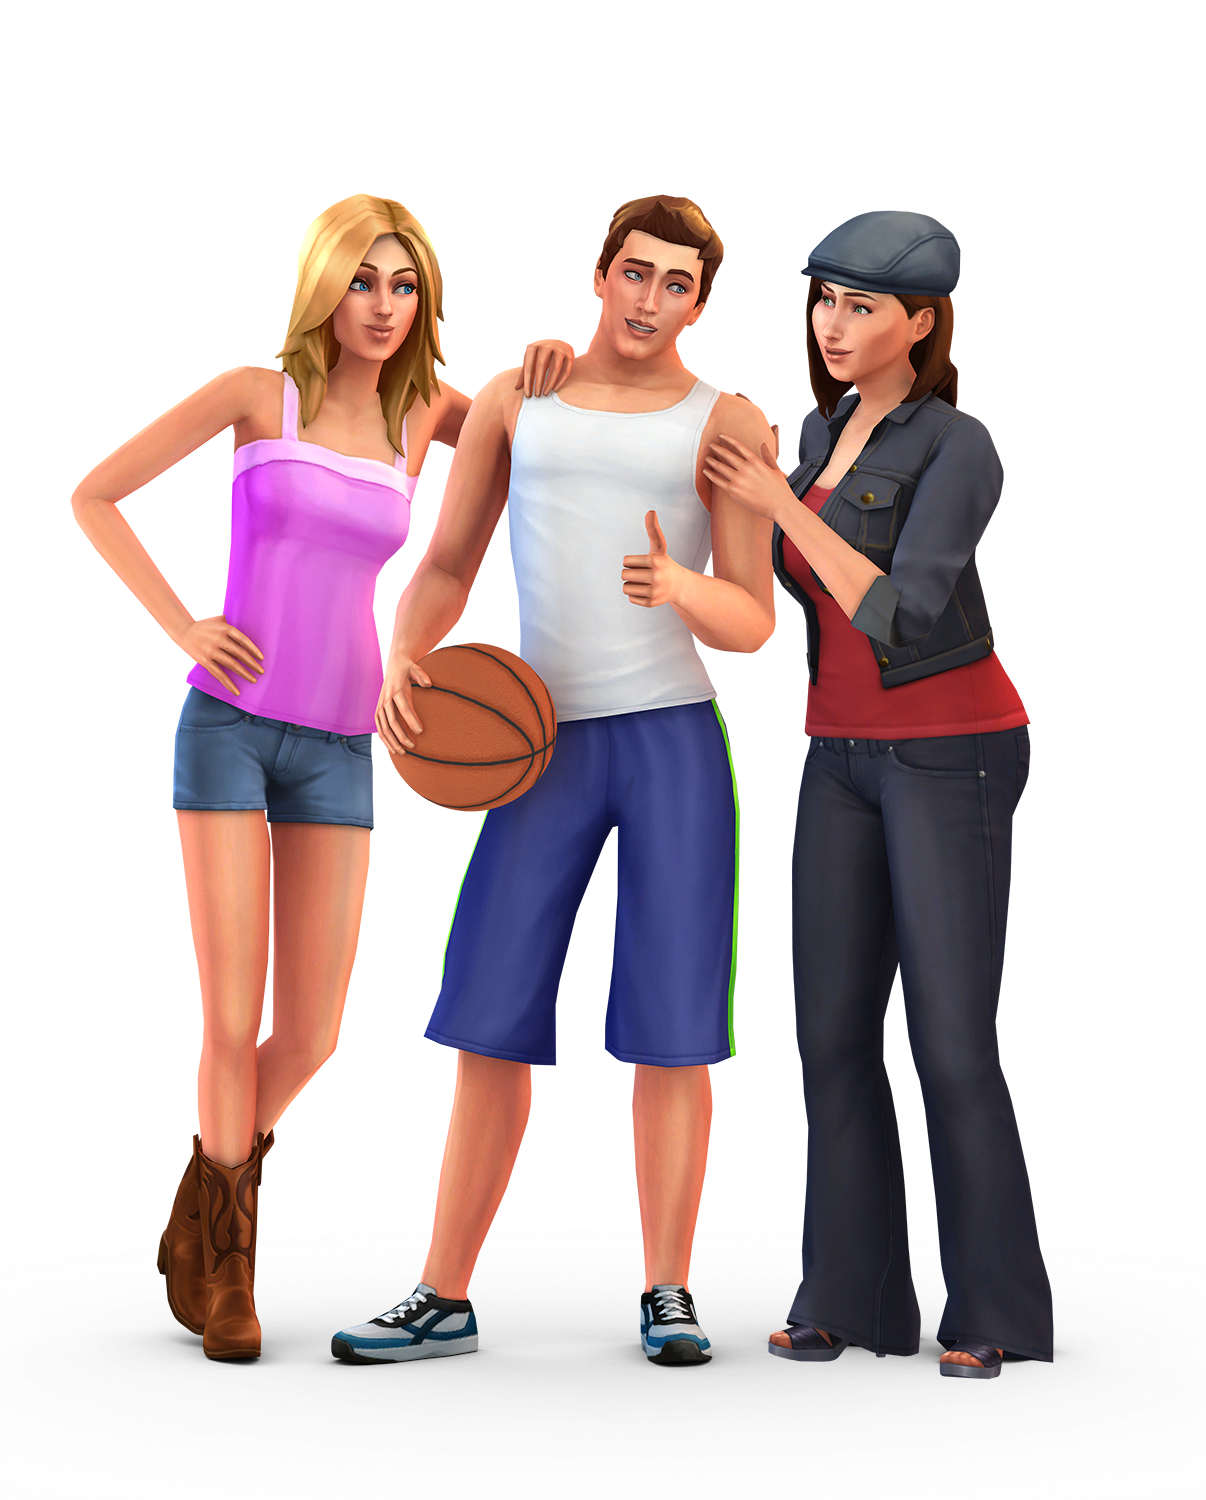 The sims 4 personagens png. Renders do somos e